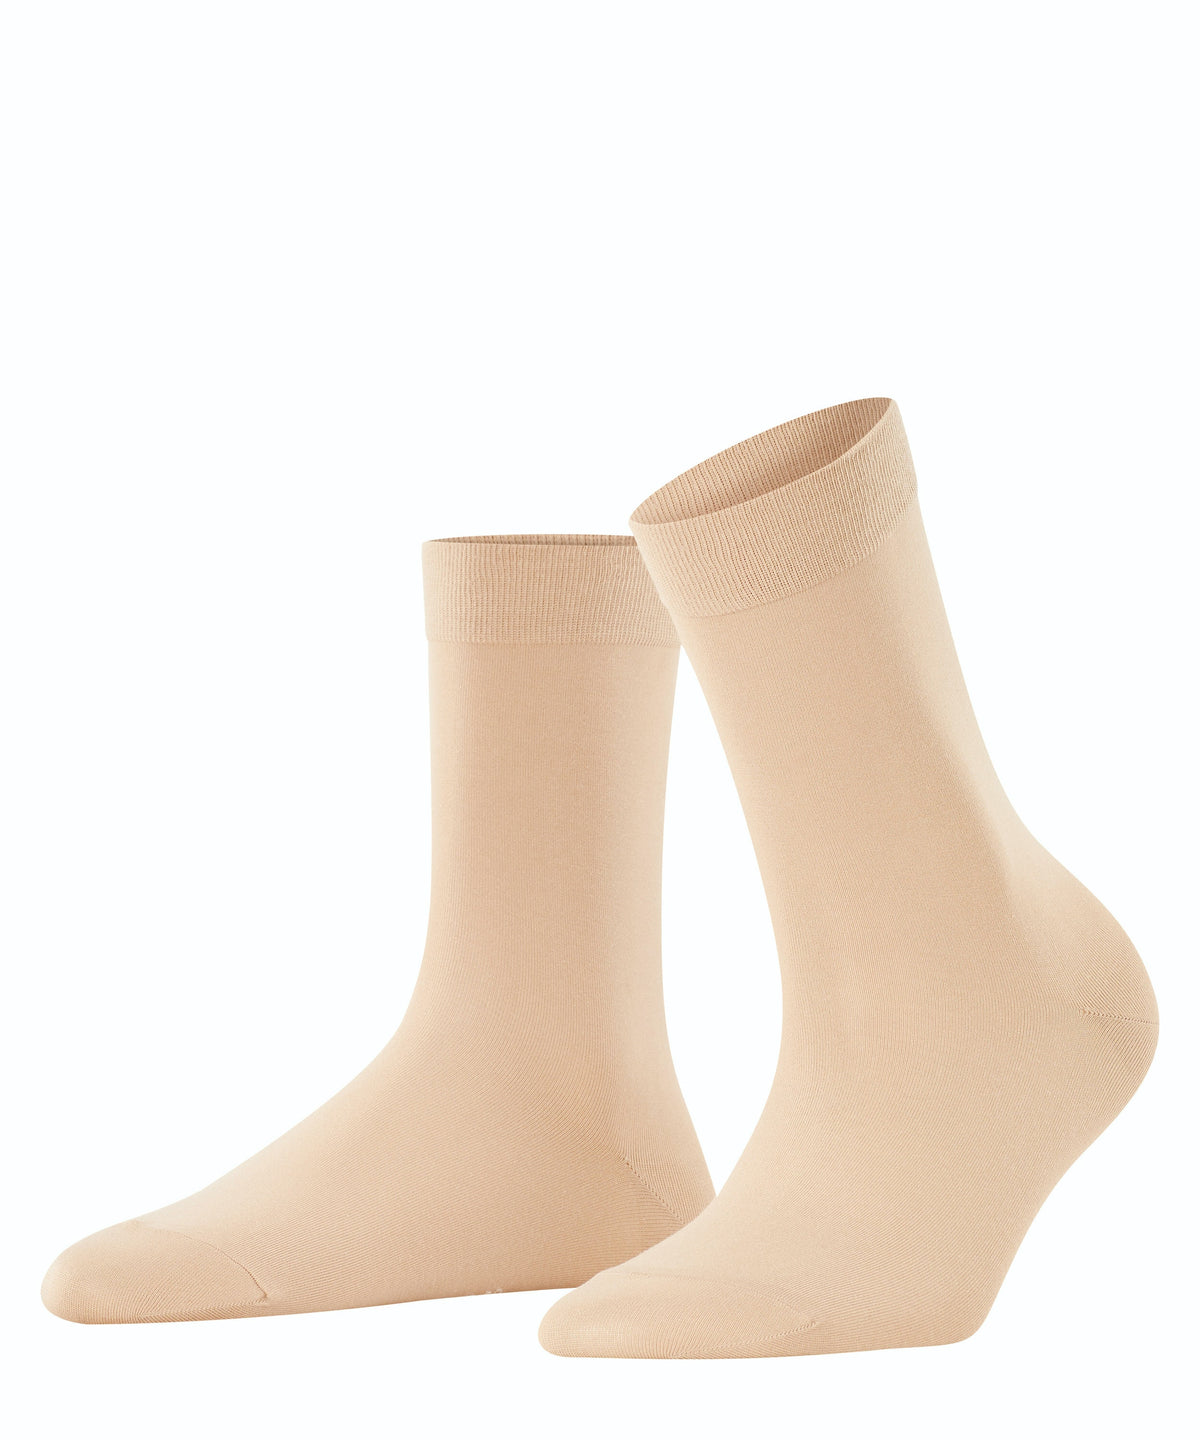 FALKE Cotton Touch Women's Socks - HANRO